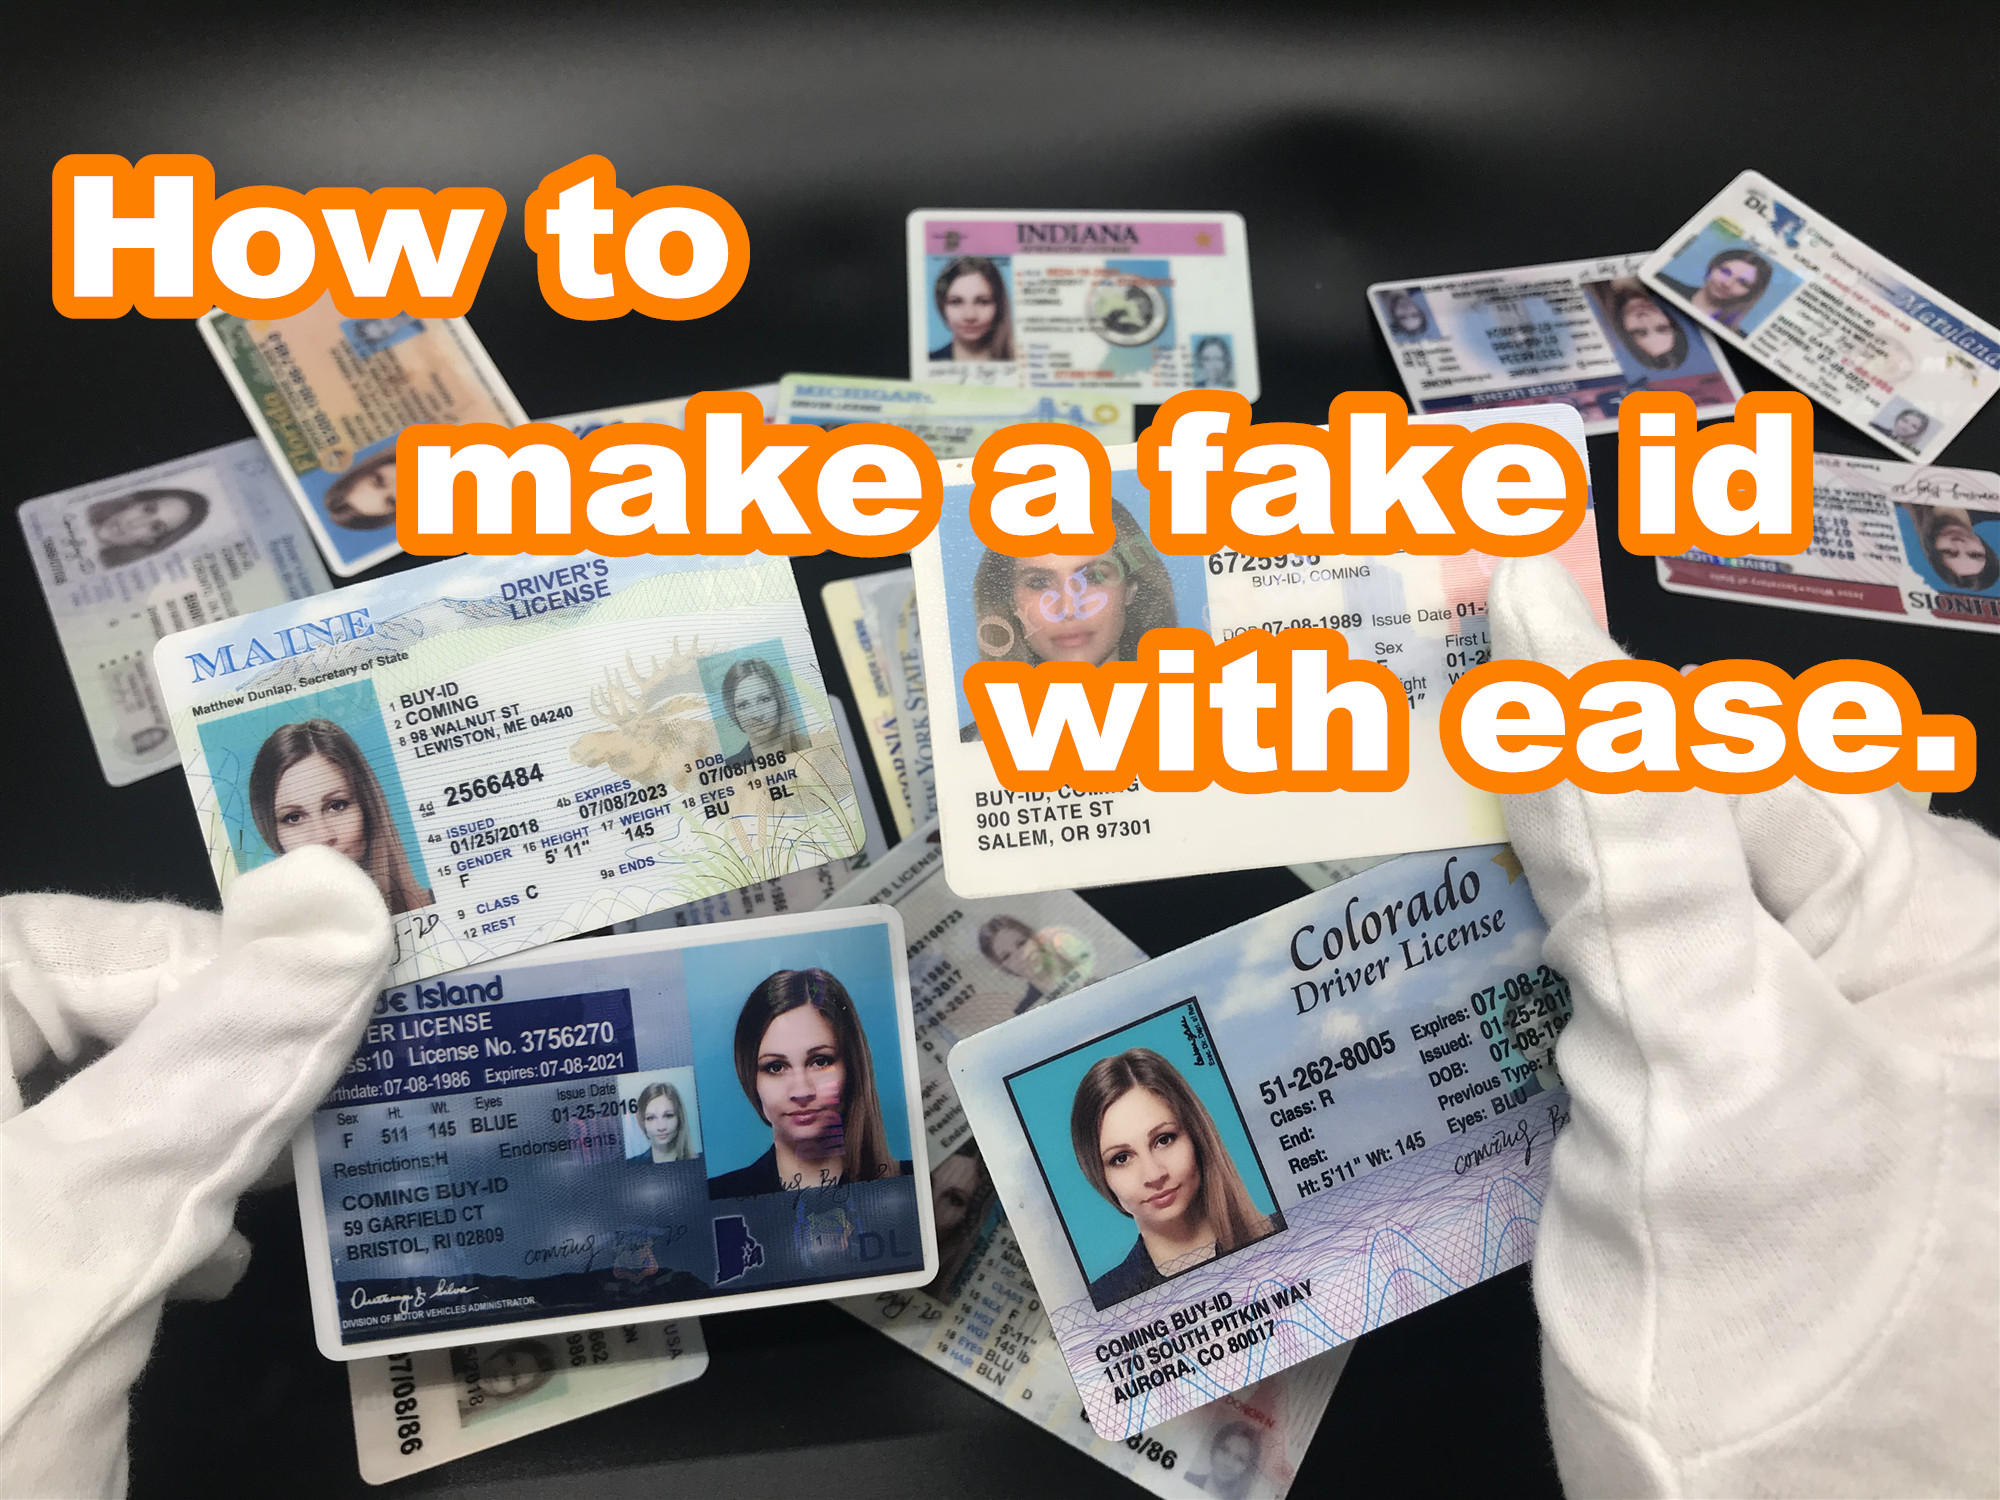 How to make a fake id with ease